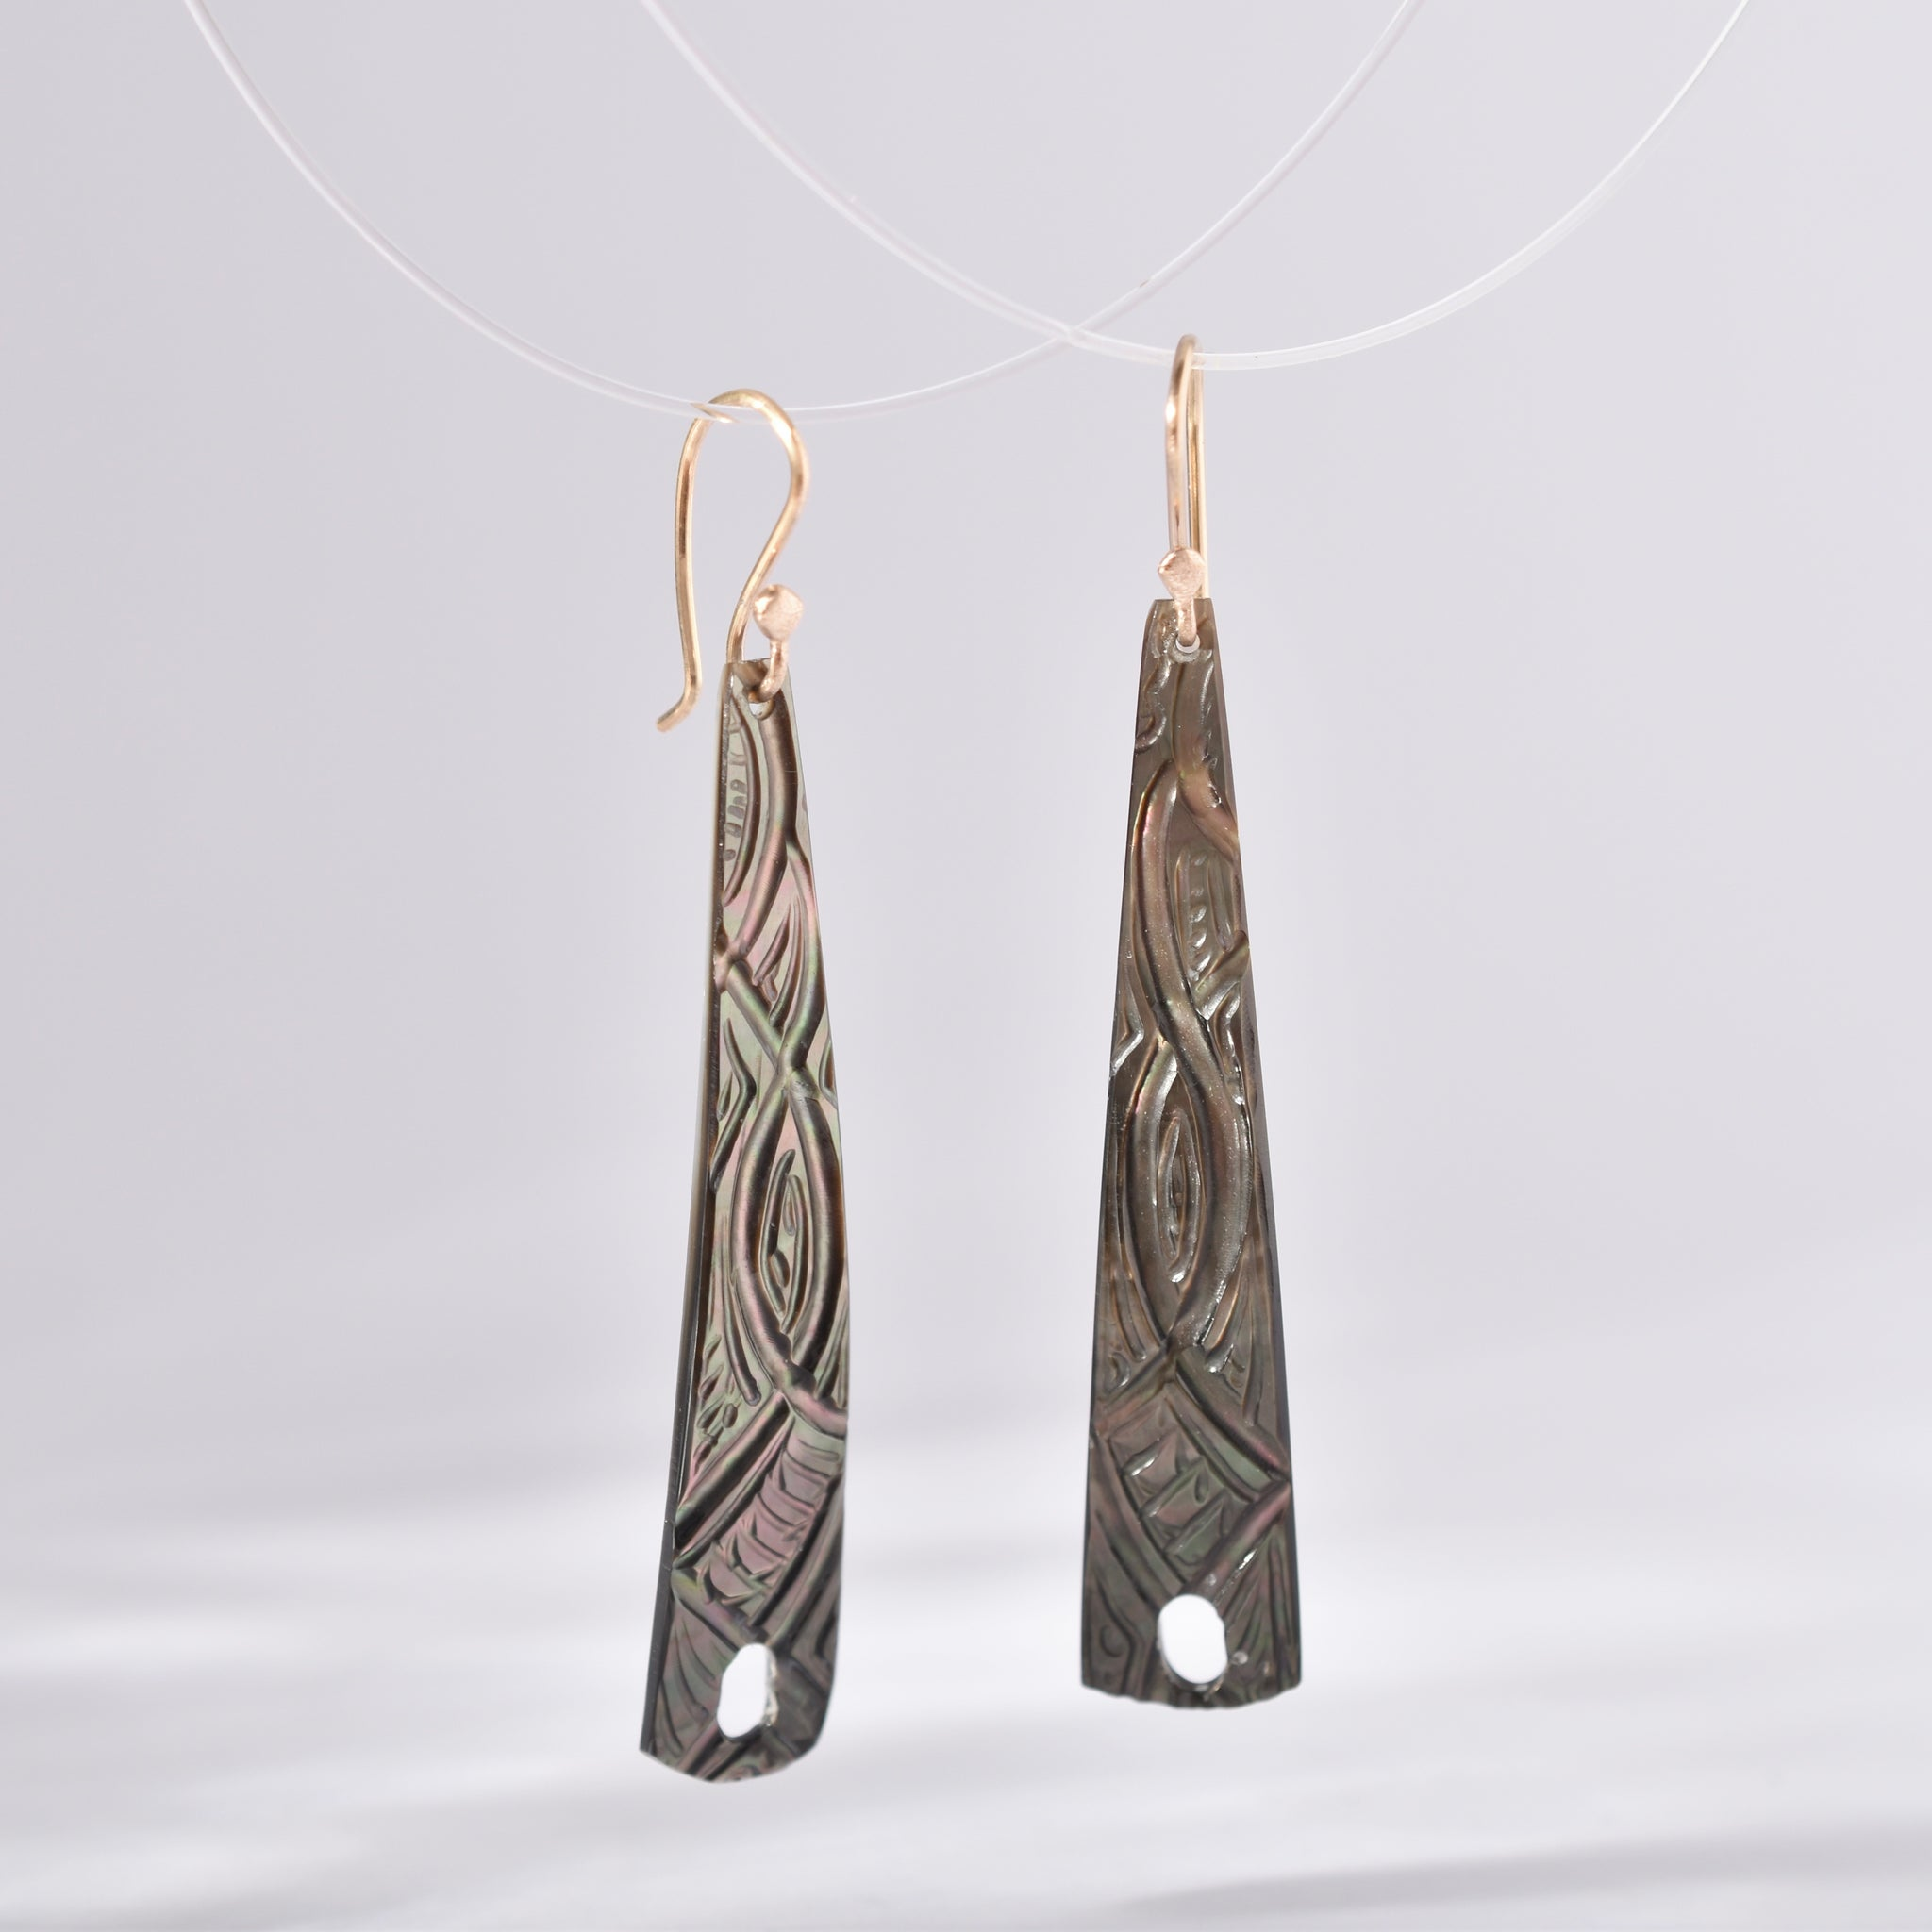 tahitian tattoo earrings with rose gold snake earhooks